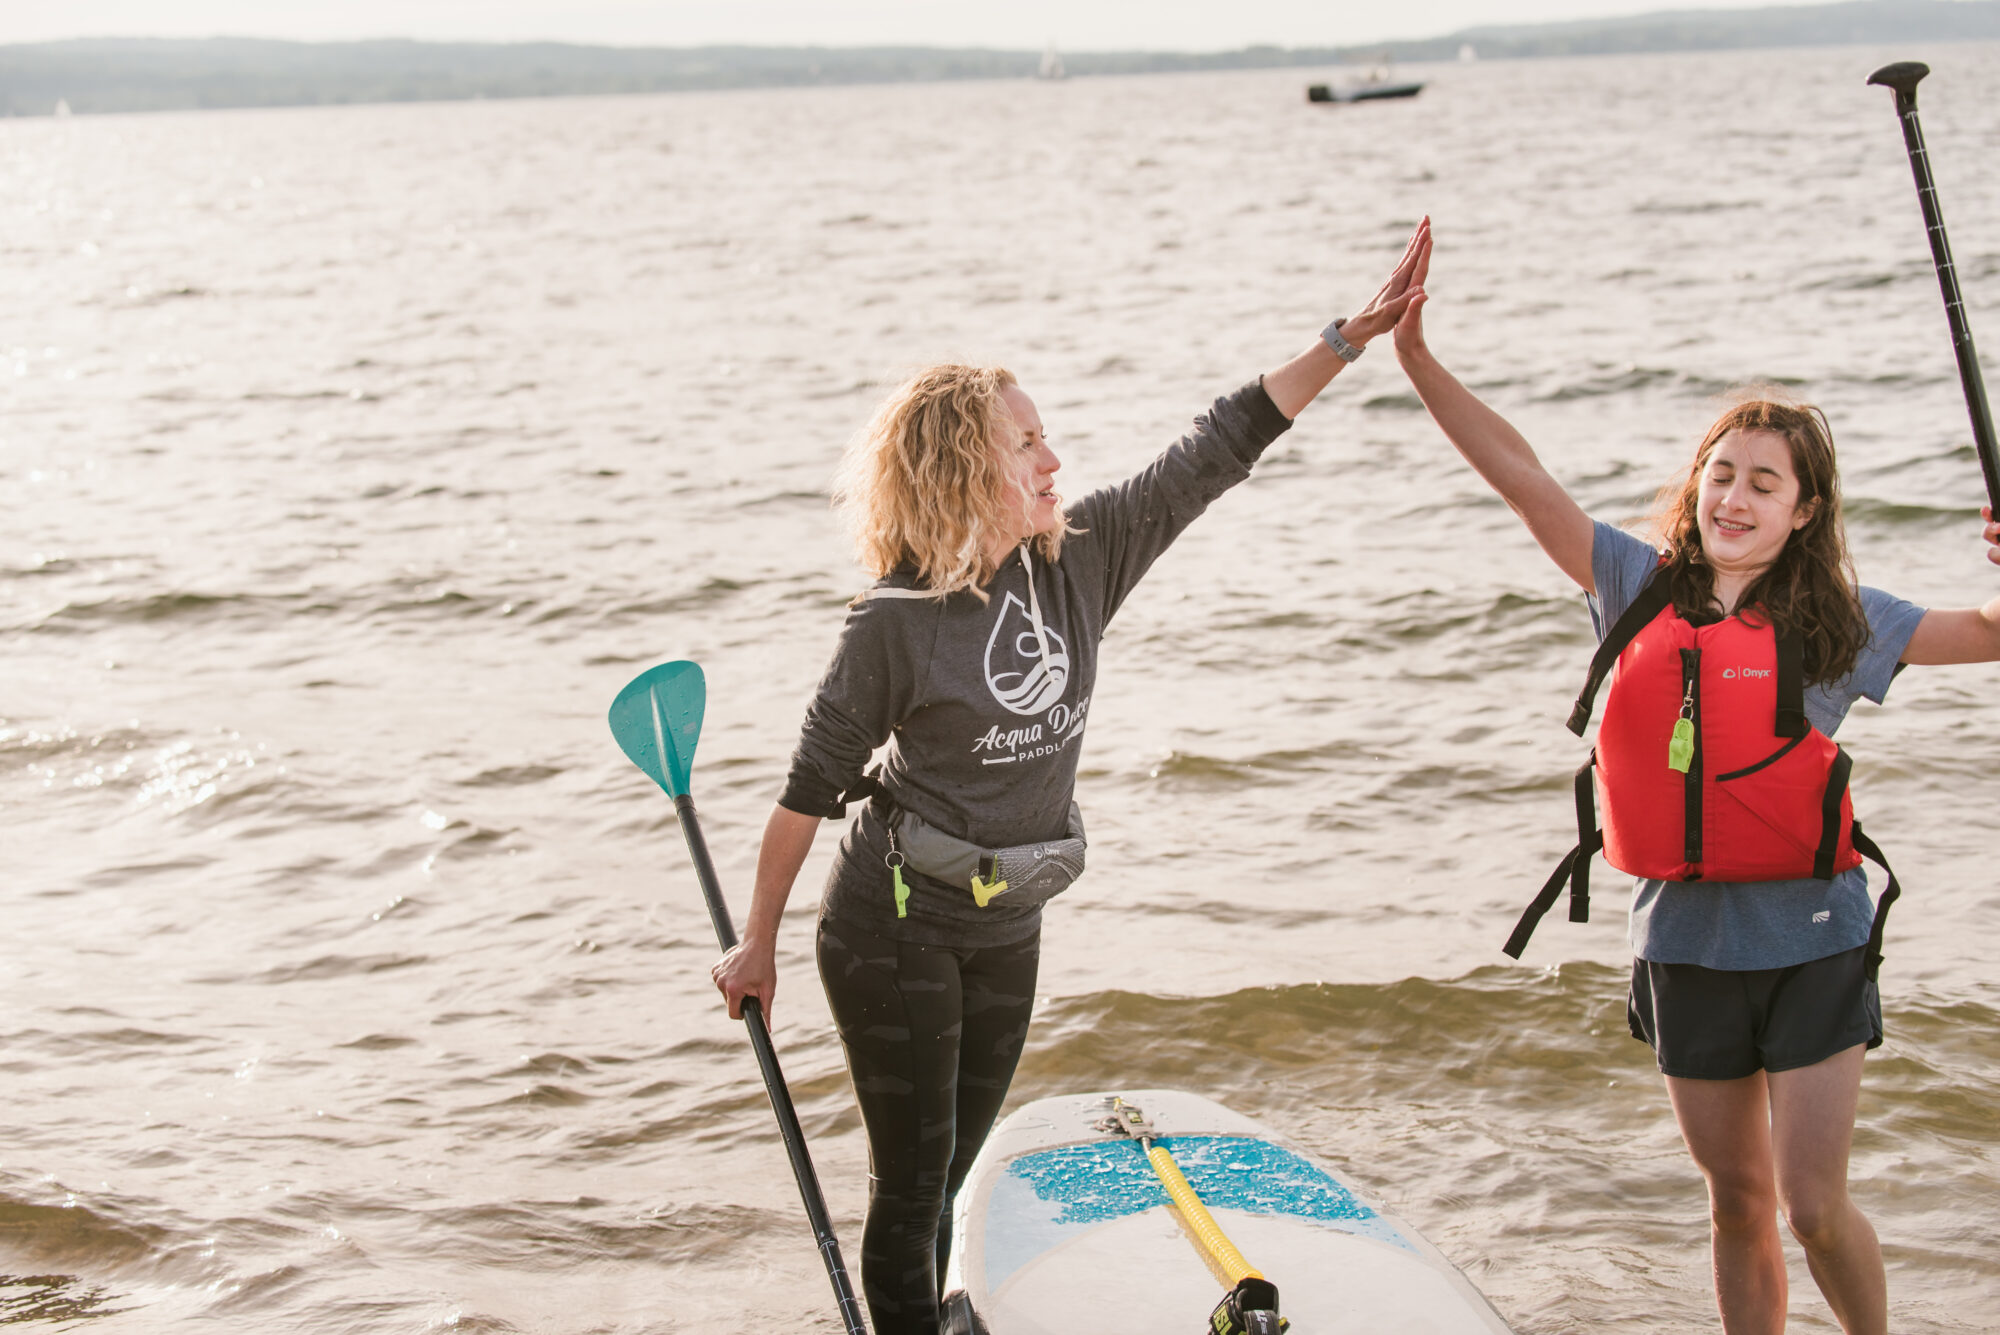 Acqua Dolce Paddle Holli and Student high five during SUP lesson